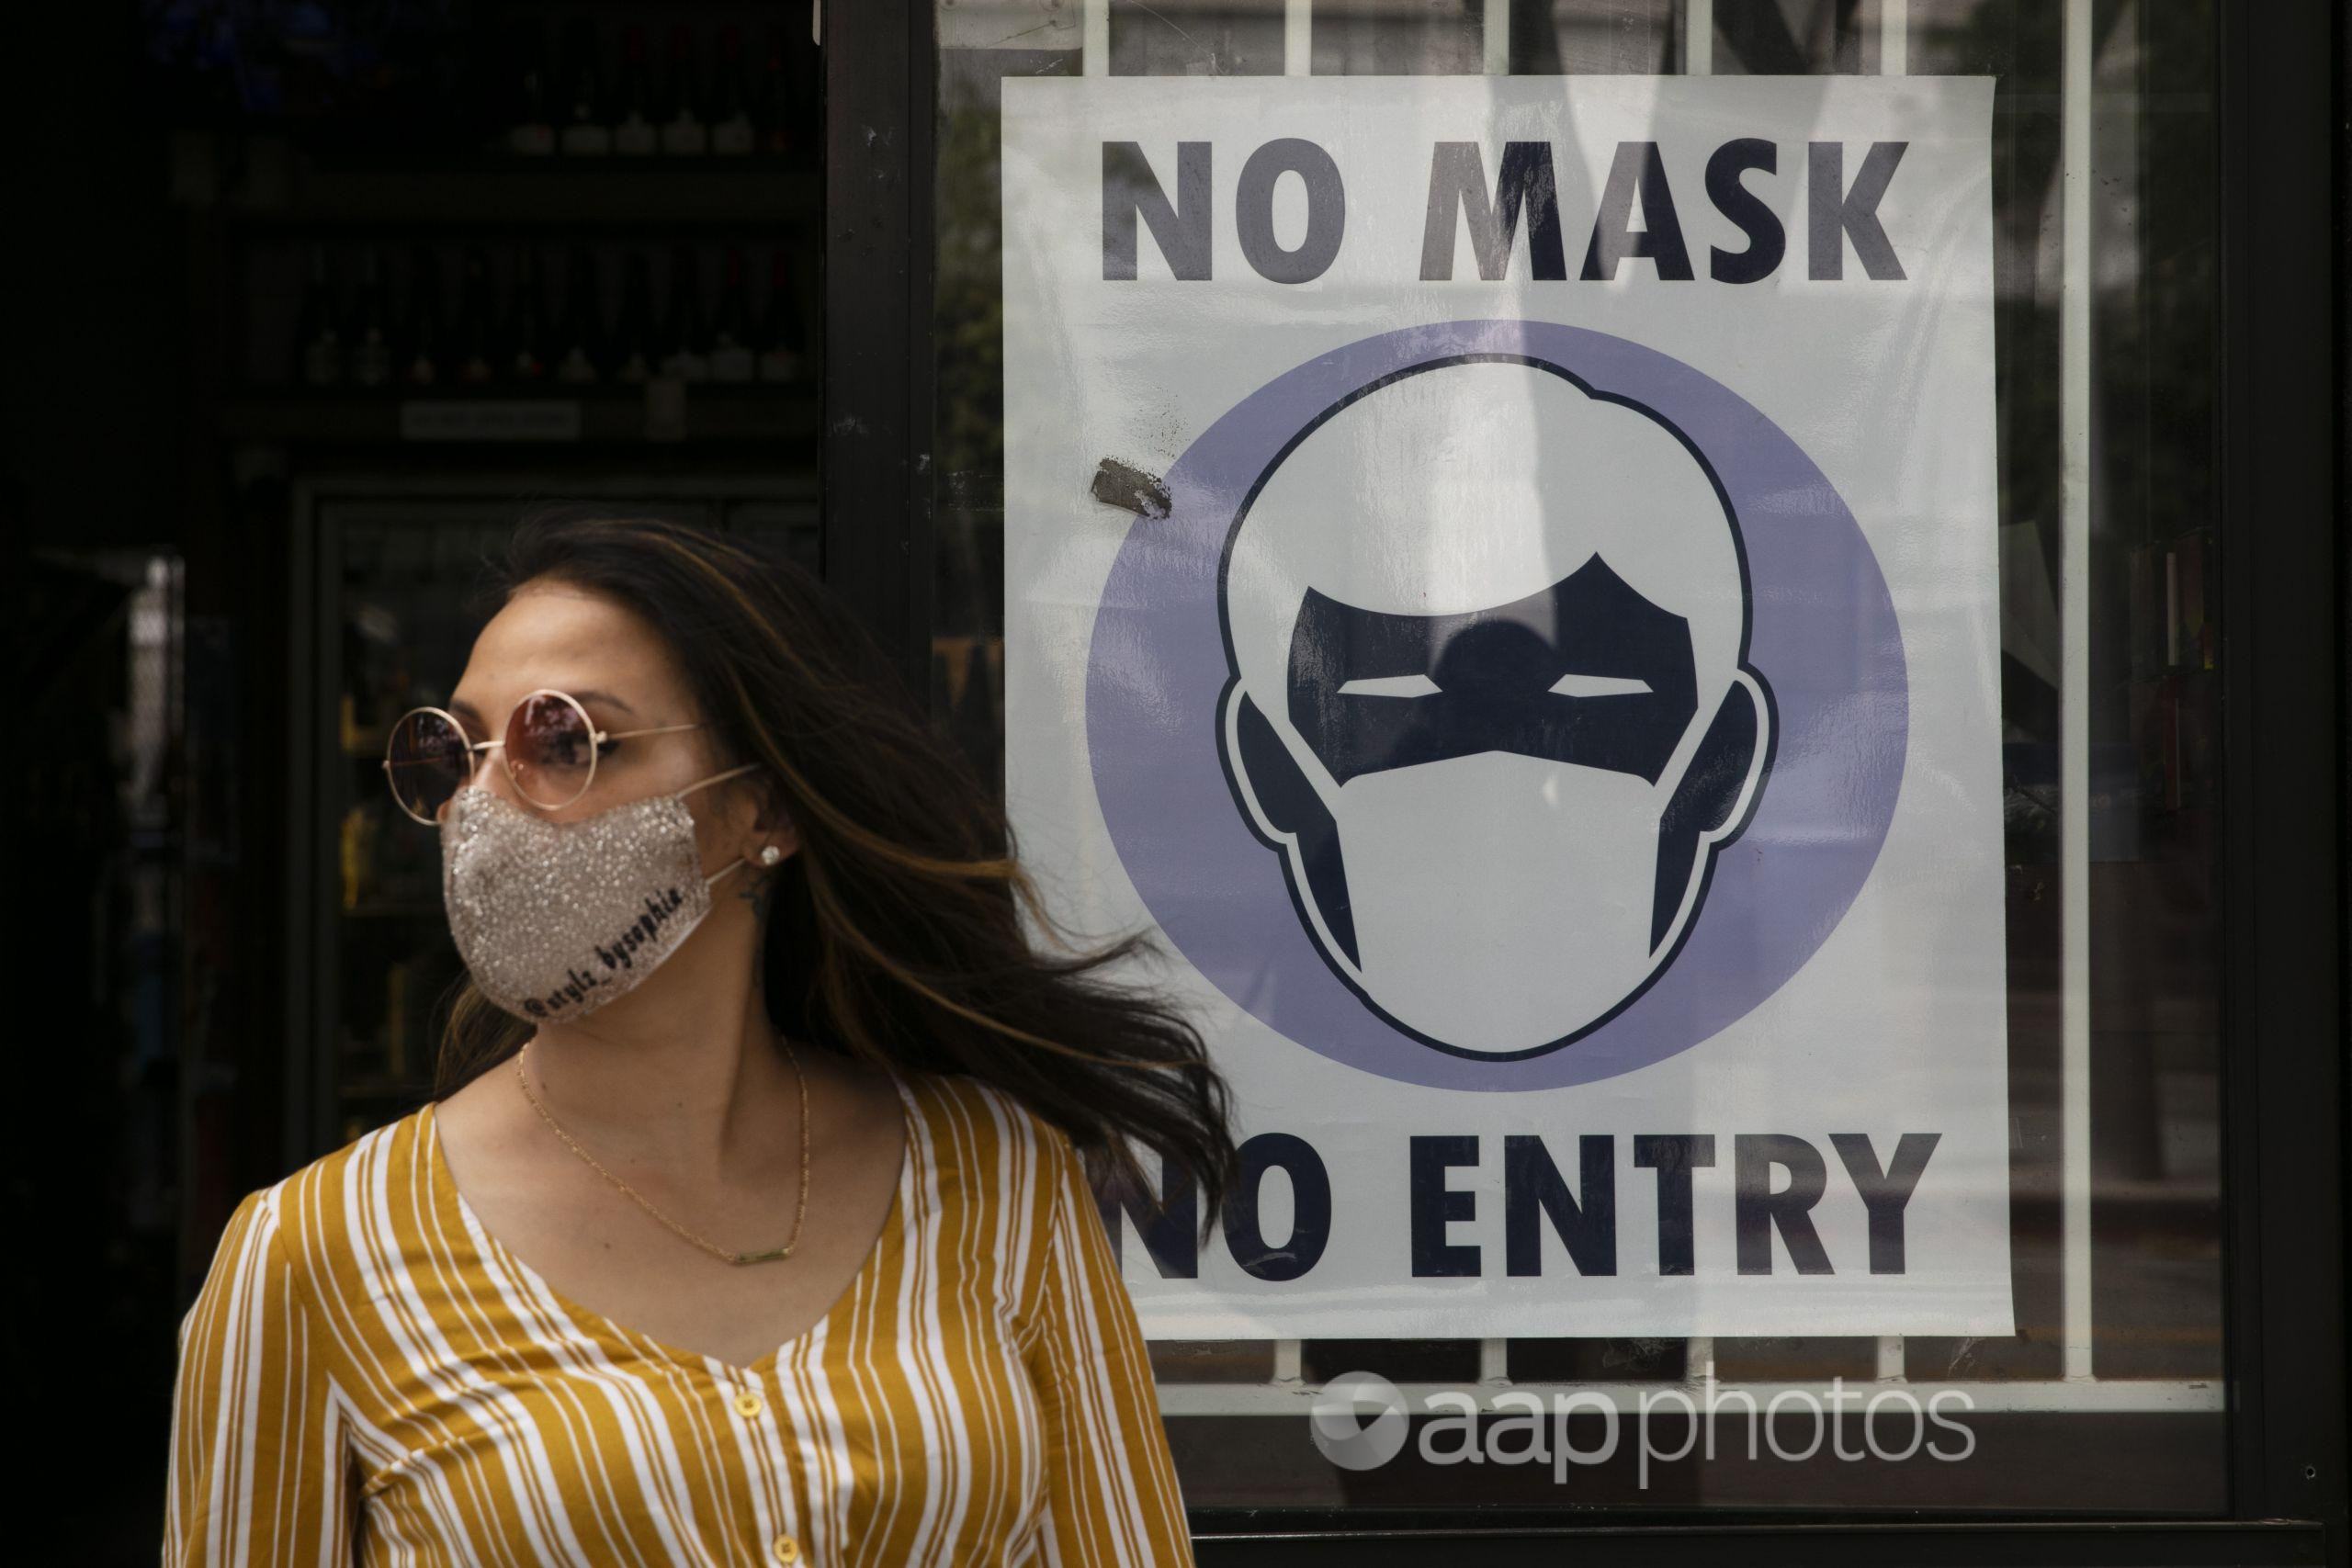 A woman walks past a sign requesting its customers to wear a mask.